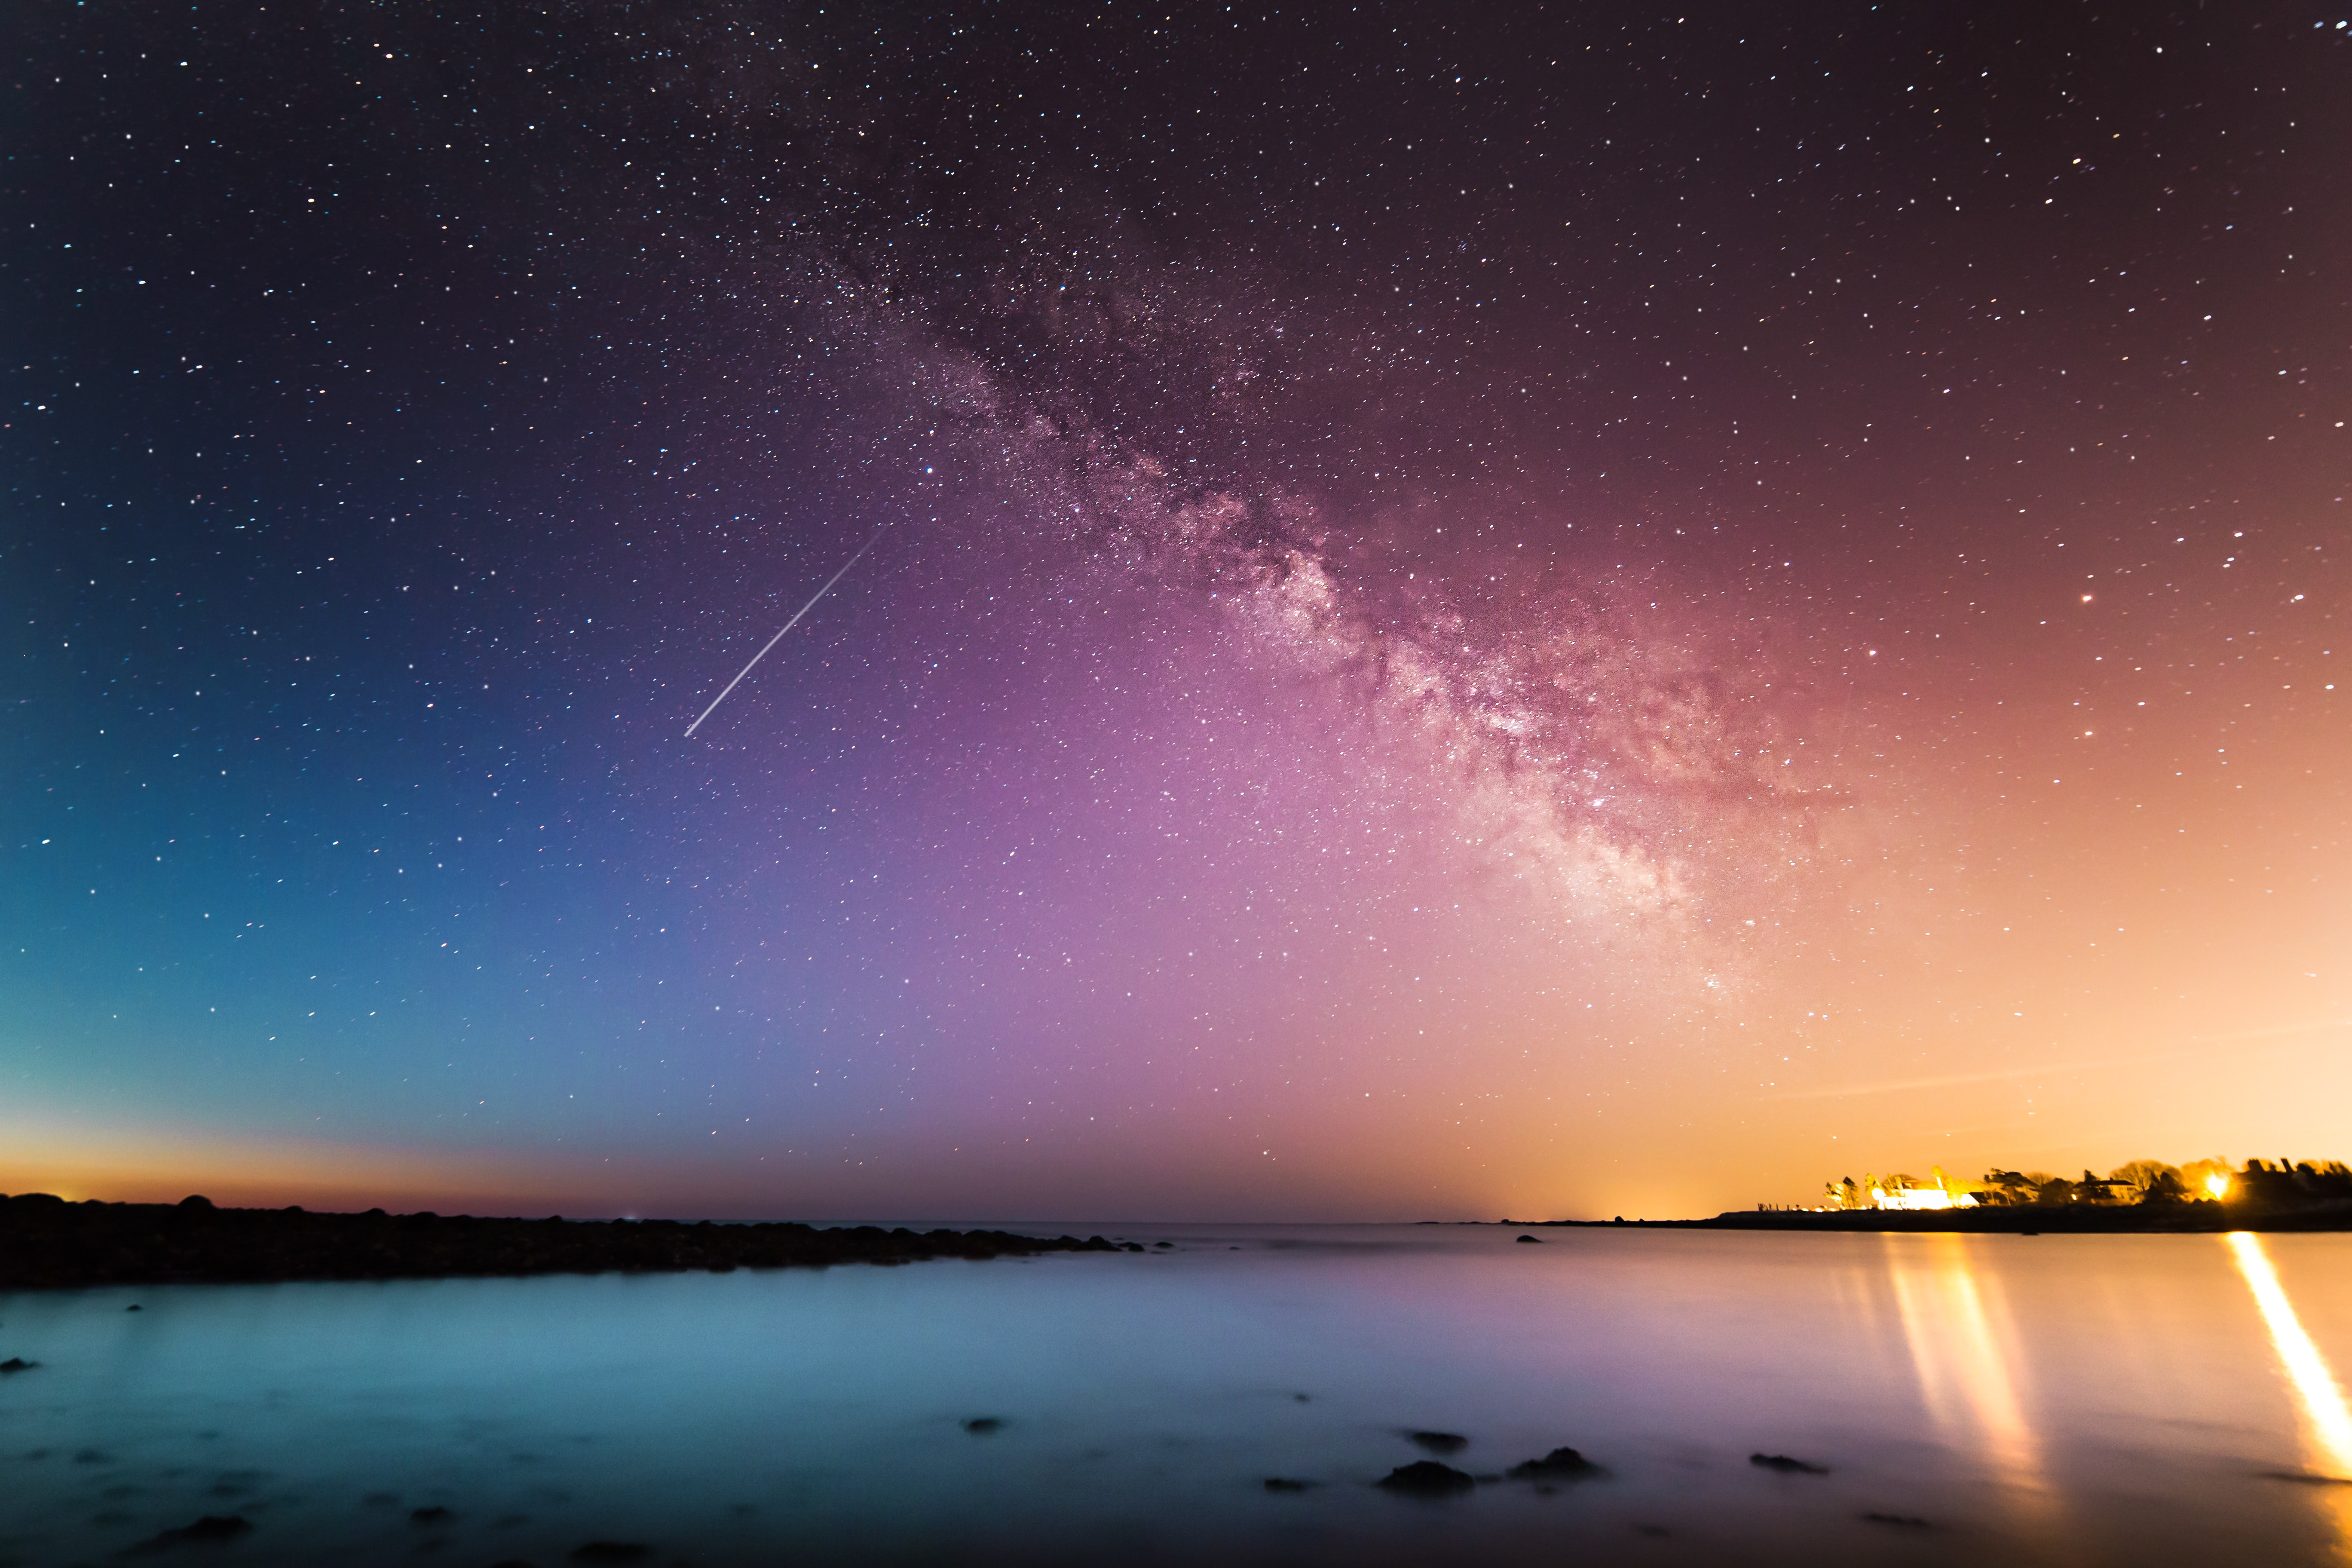 Colorful starry night sky with the Milky Way and a shooting star over Rye